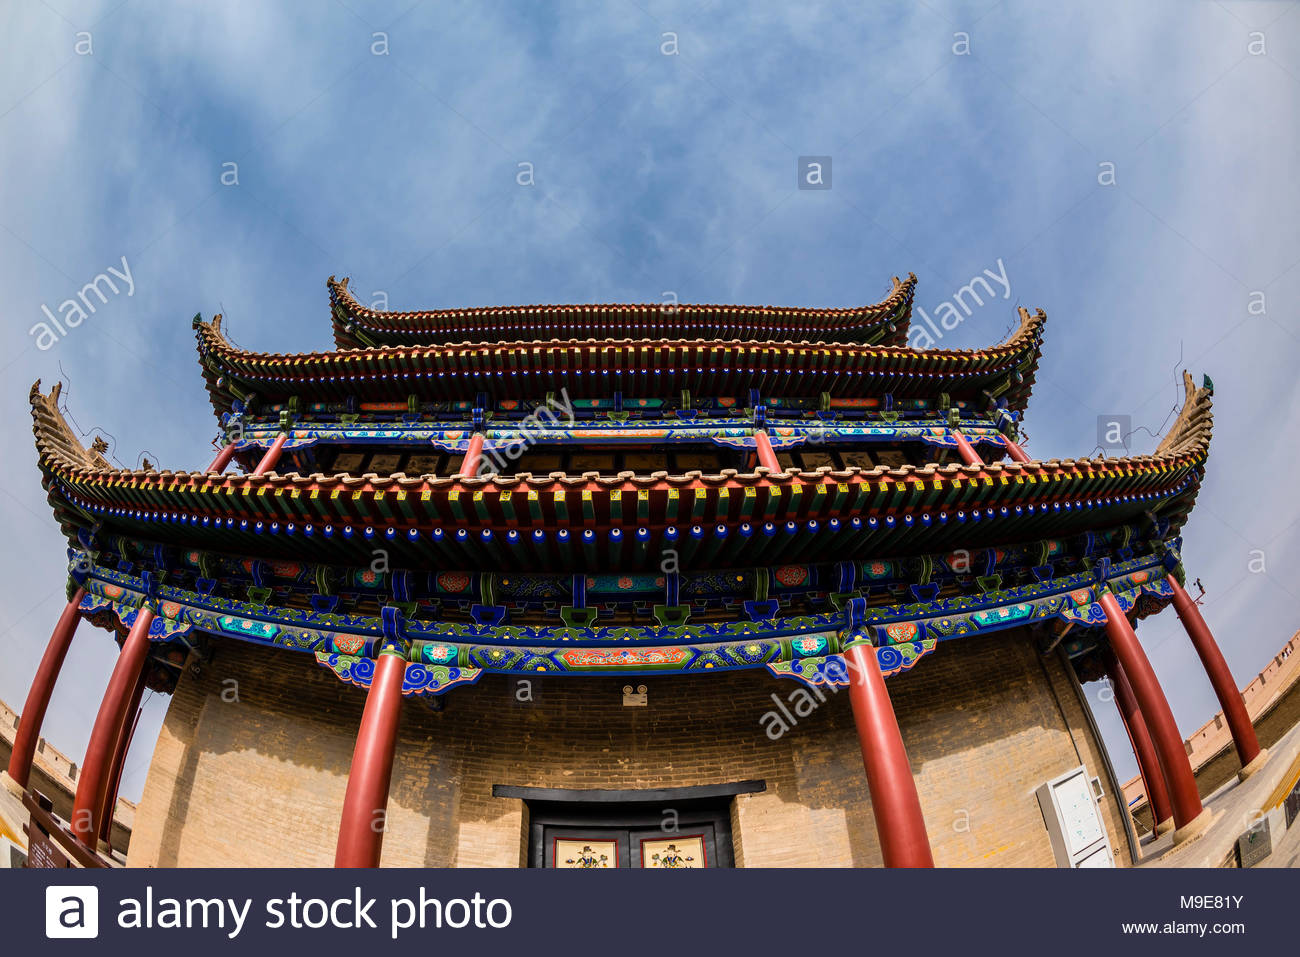 Guanghua Tower (East Tower). Jiayuguan Fort is the western end of the Great Wall built in the Ming Dynasty (1368 – 1644). It was an important military - Stock Image